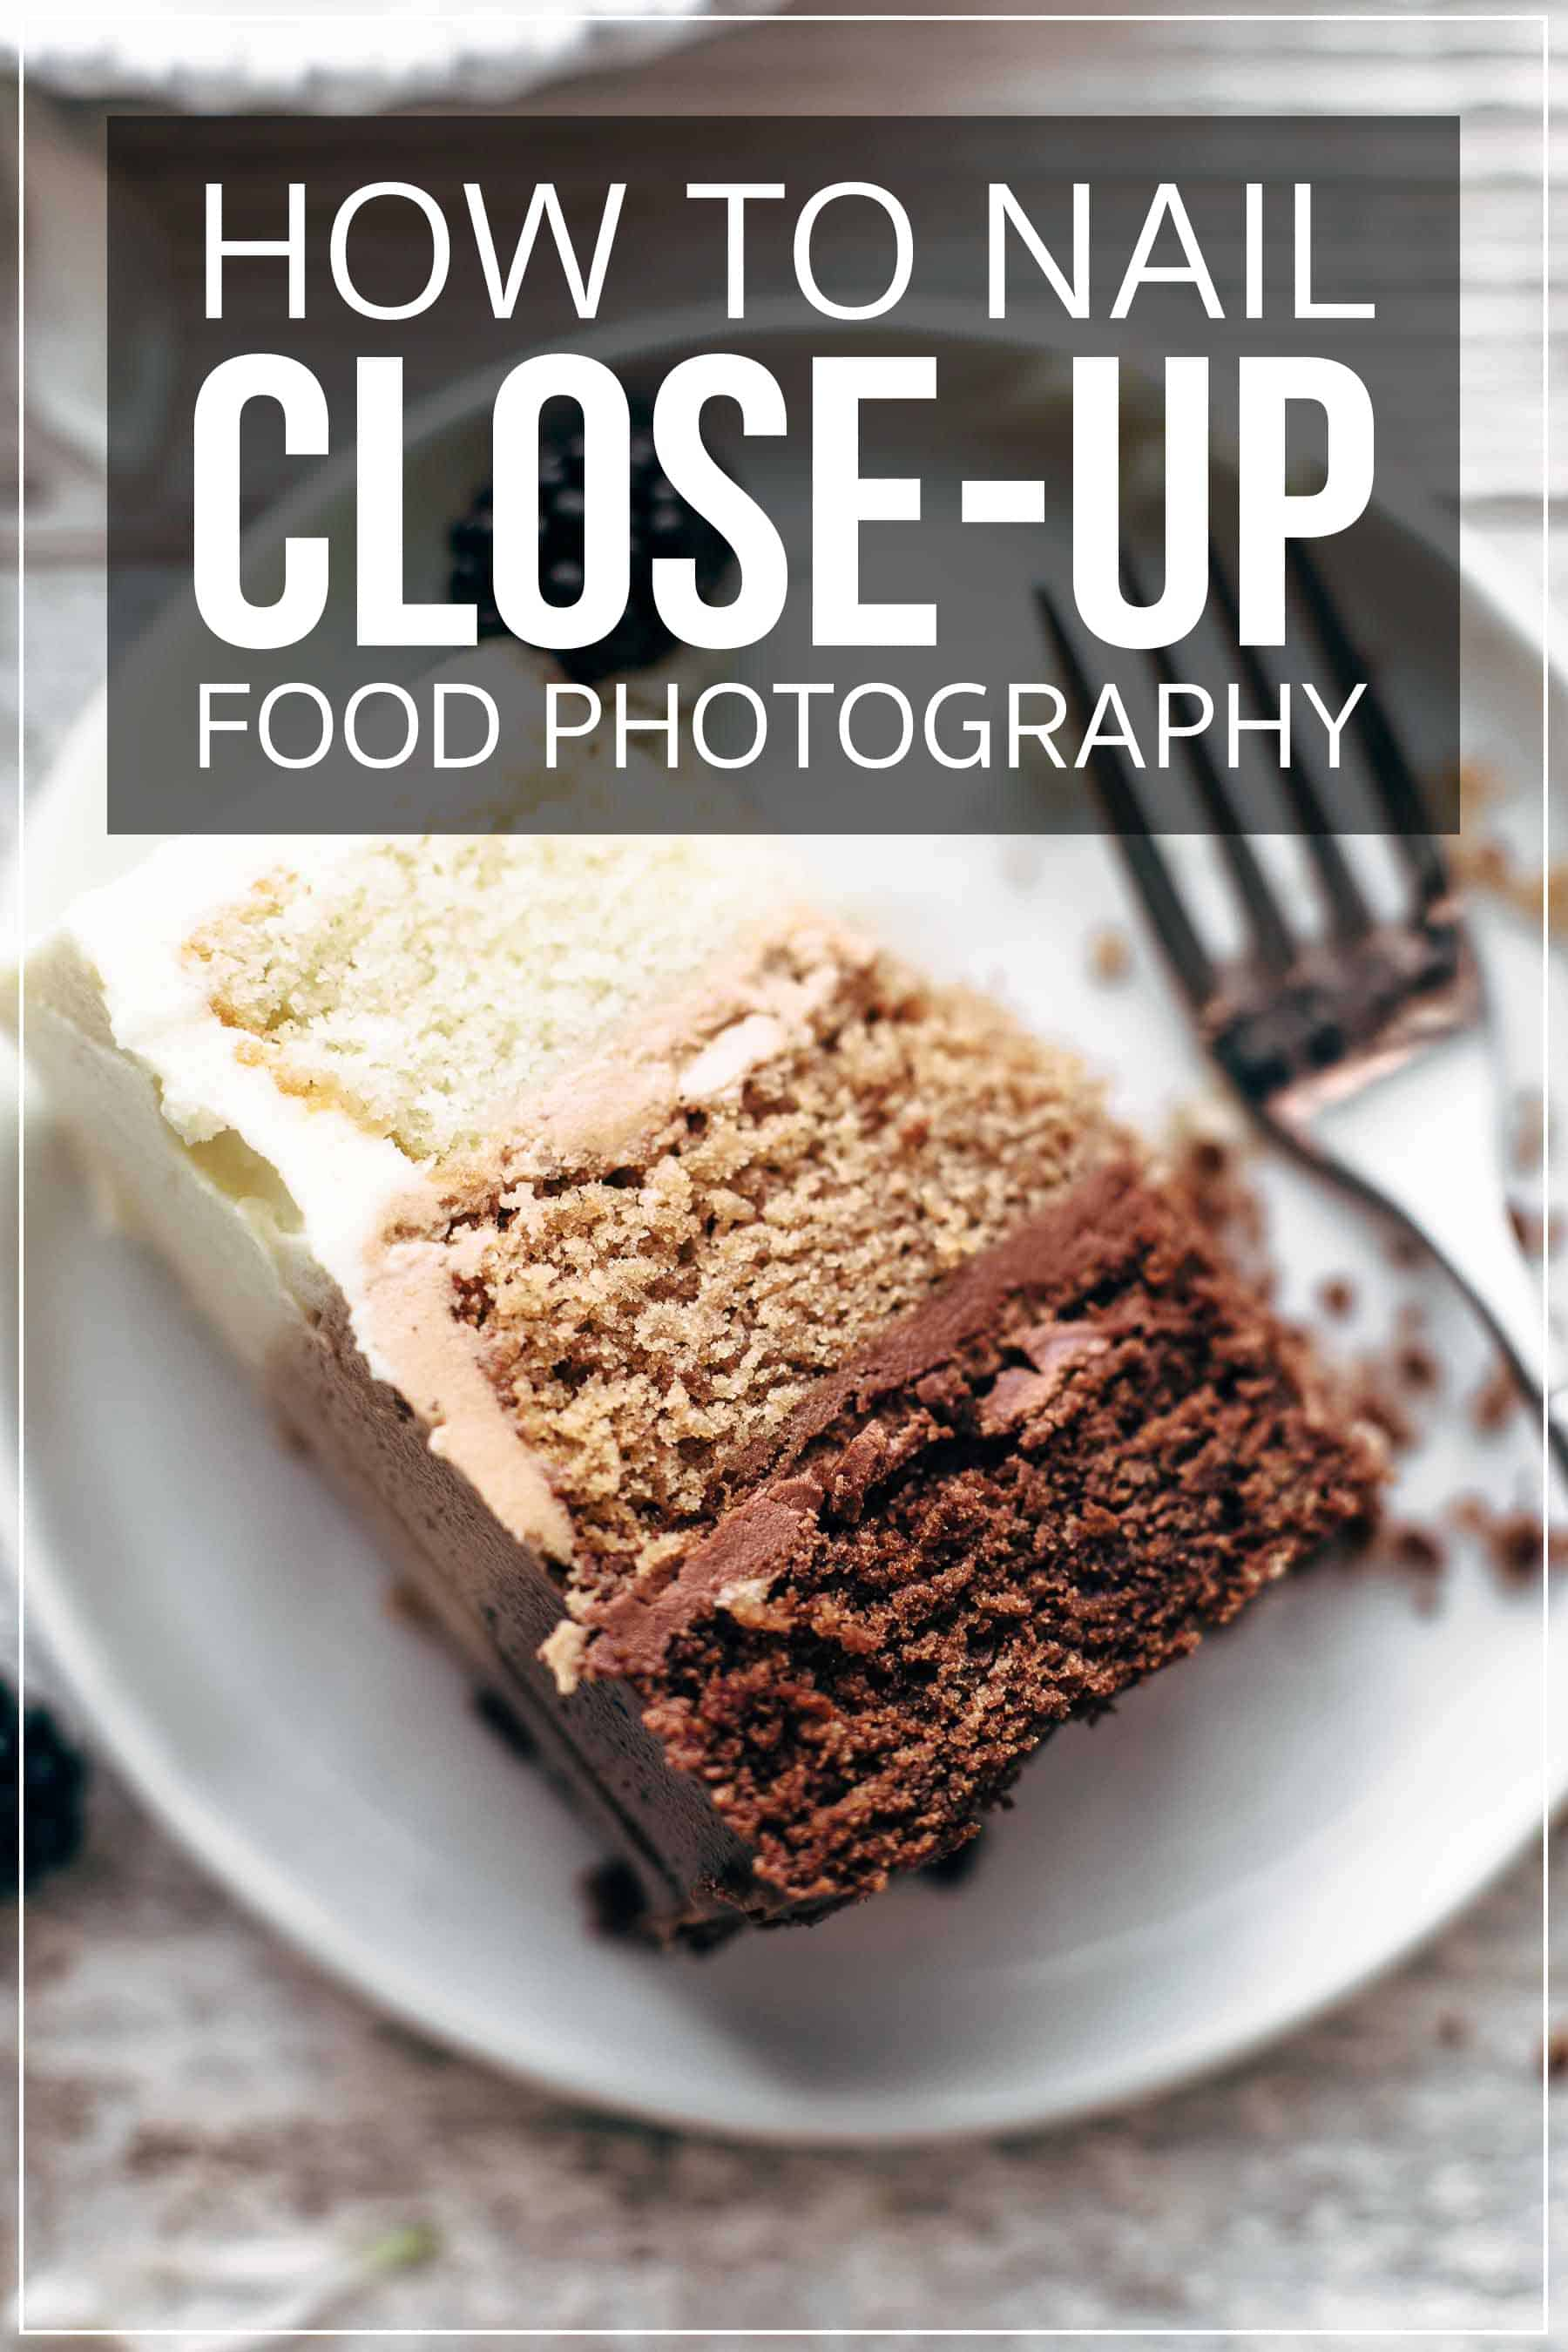 Learn how to master close-up food photography to take mouthwatering food photos with lots of crisp and clear details of the food.Food Photography Tips by Also The Crumbs Please#foodphotography #foodphotographytips #foodphotography101 #closeupphotography #foodphotos #foodstyling